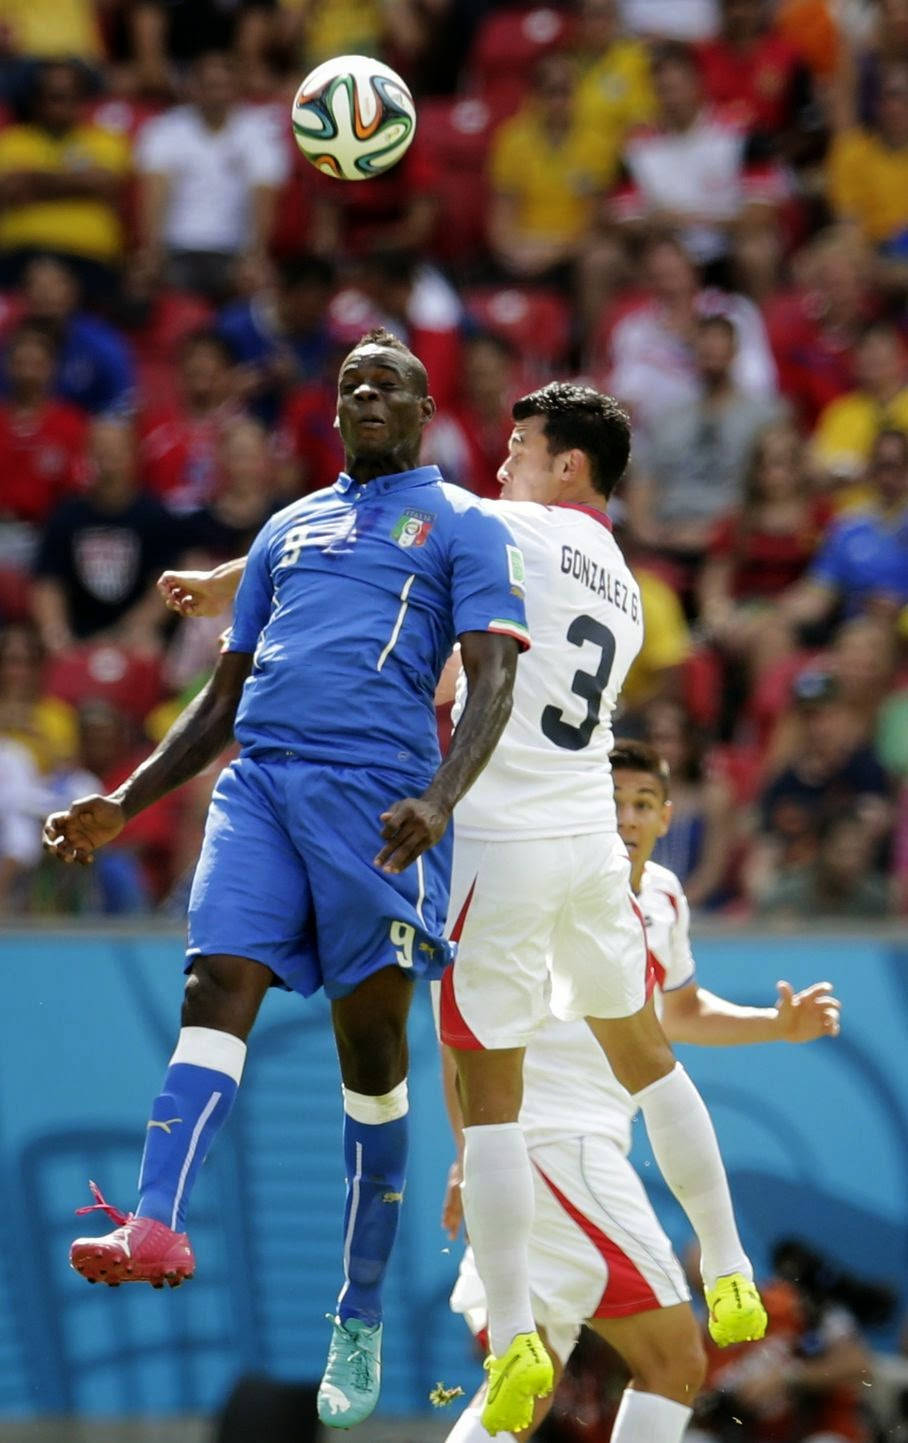 Italy's Mario Balotelli, left, and Costa Rica's Giancarlo Gonzalez head the ball during the group D World Cup soccer match between Italy and Costa Rica at the Arena Pernambuco in Recife, Brazil, Friday, June 20, 2014.